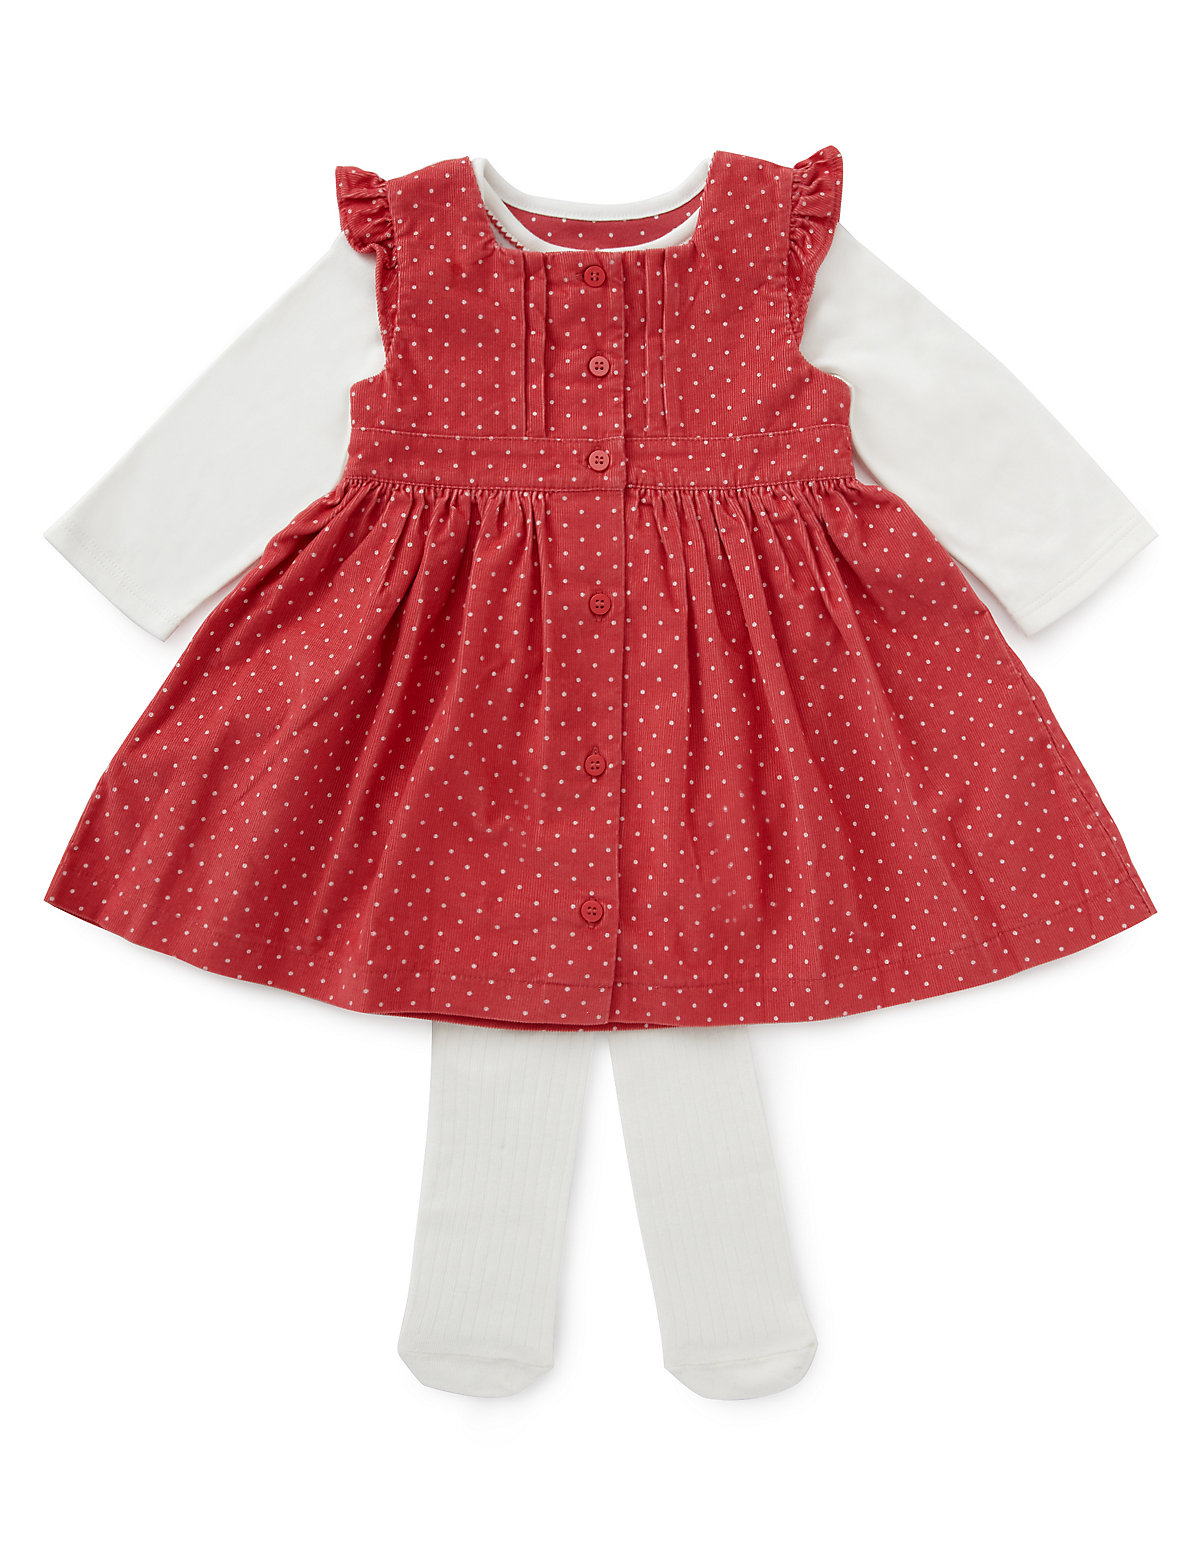 3 Piece Cotton Rich Spotted Corduroy Dress, Bodysuit & Tights Outfit